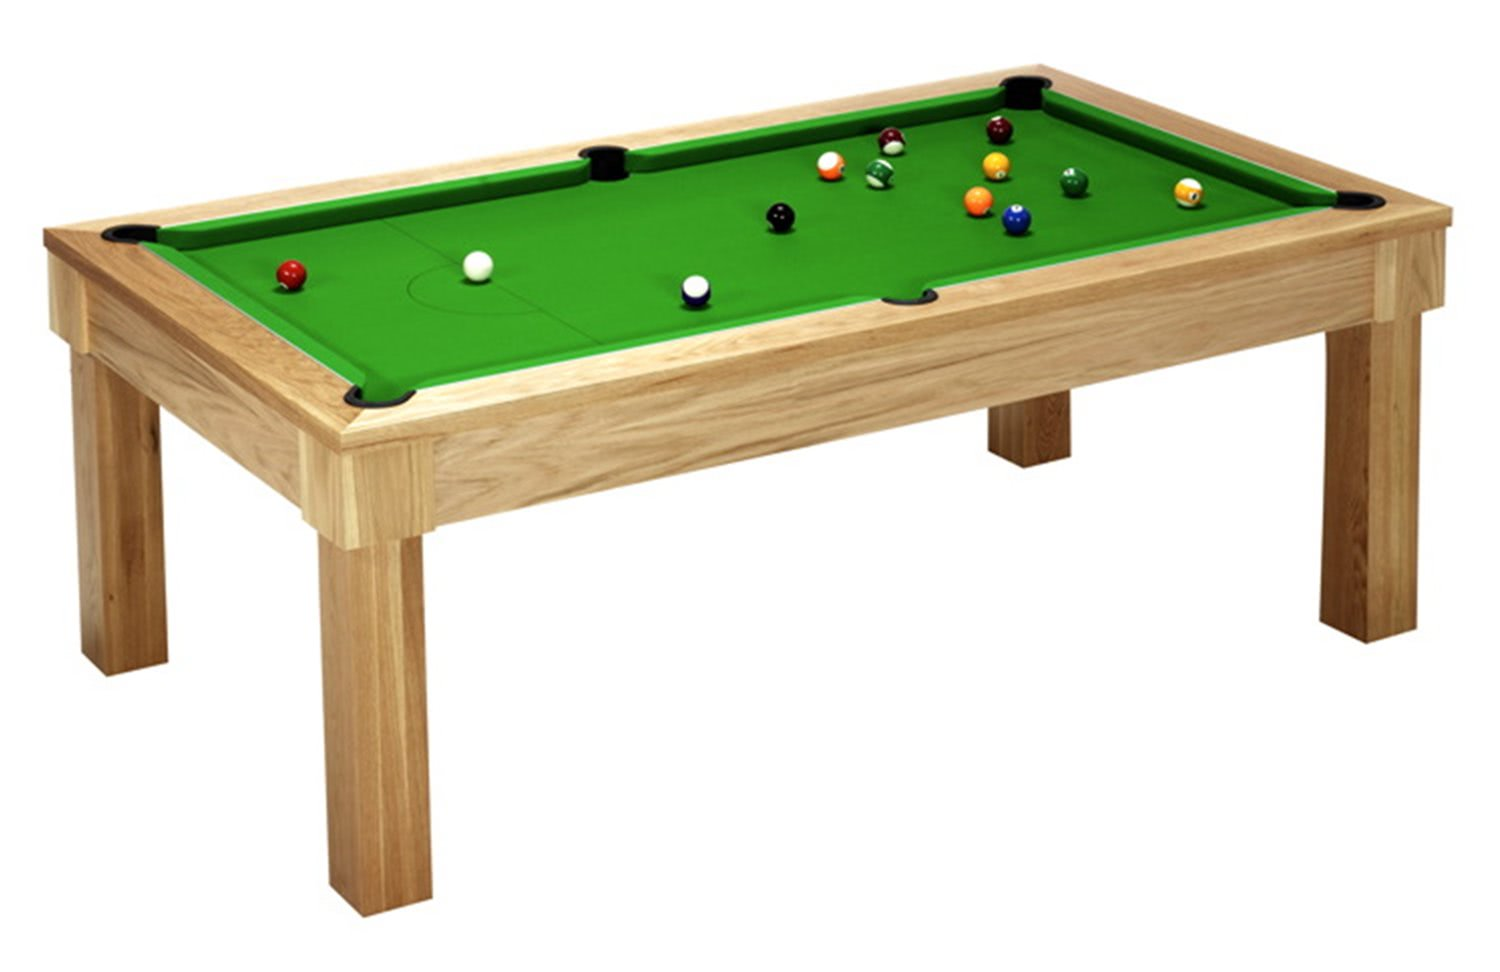 Unique Pool Dining Table - 7 ft | Liberty Games